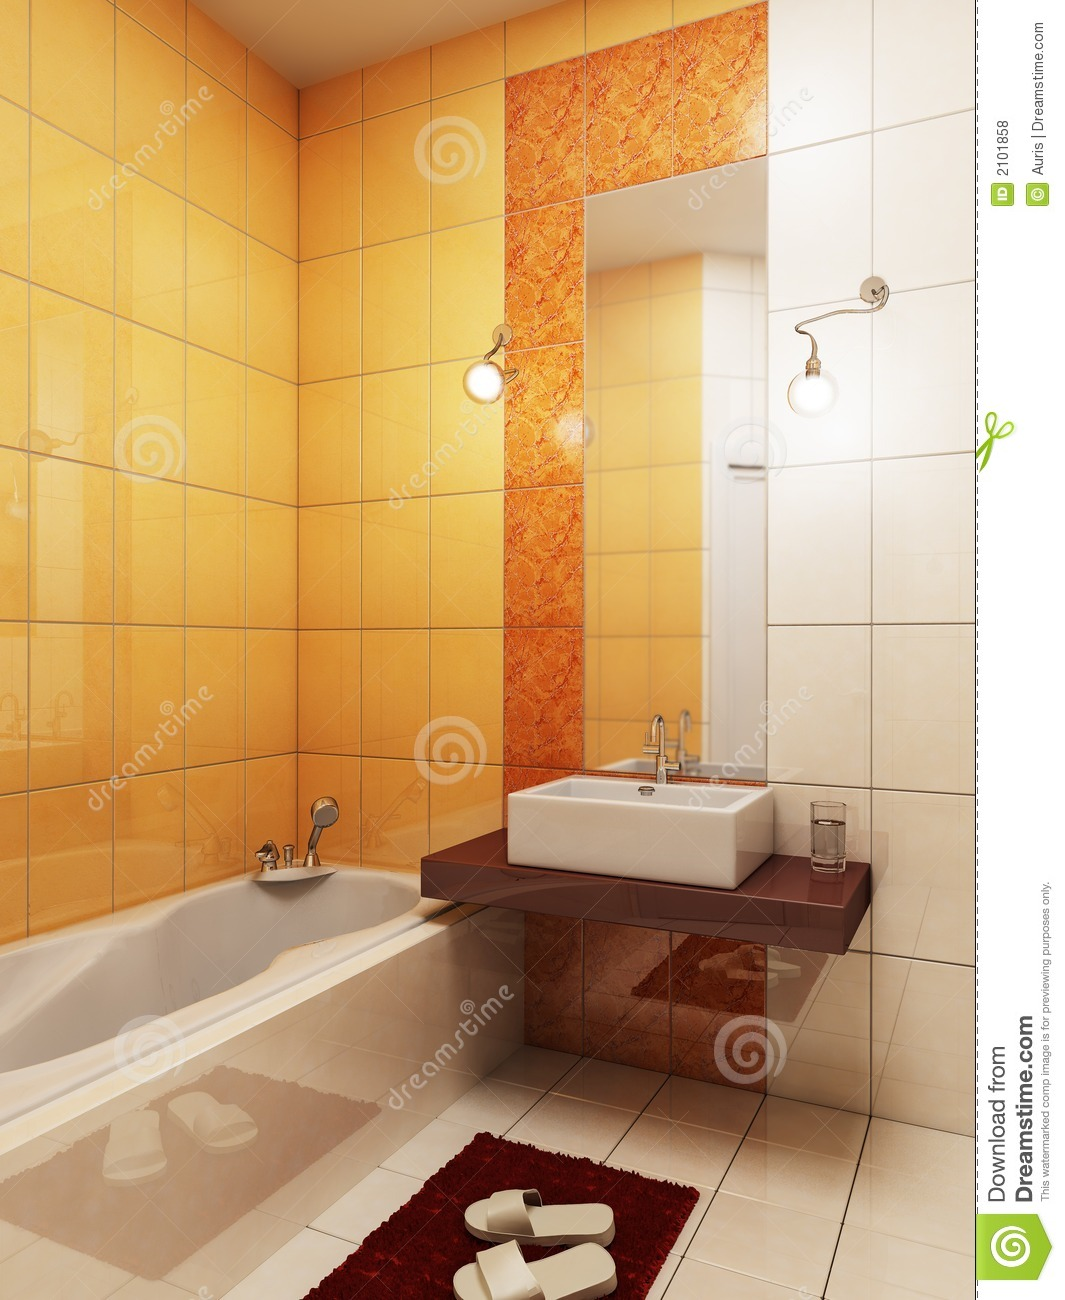 3d Bathroom Rendering Royalty Free Stock Photos Image 2101858